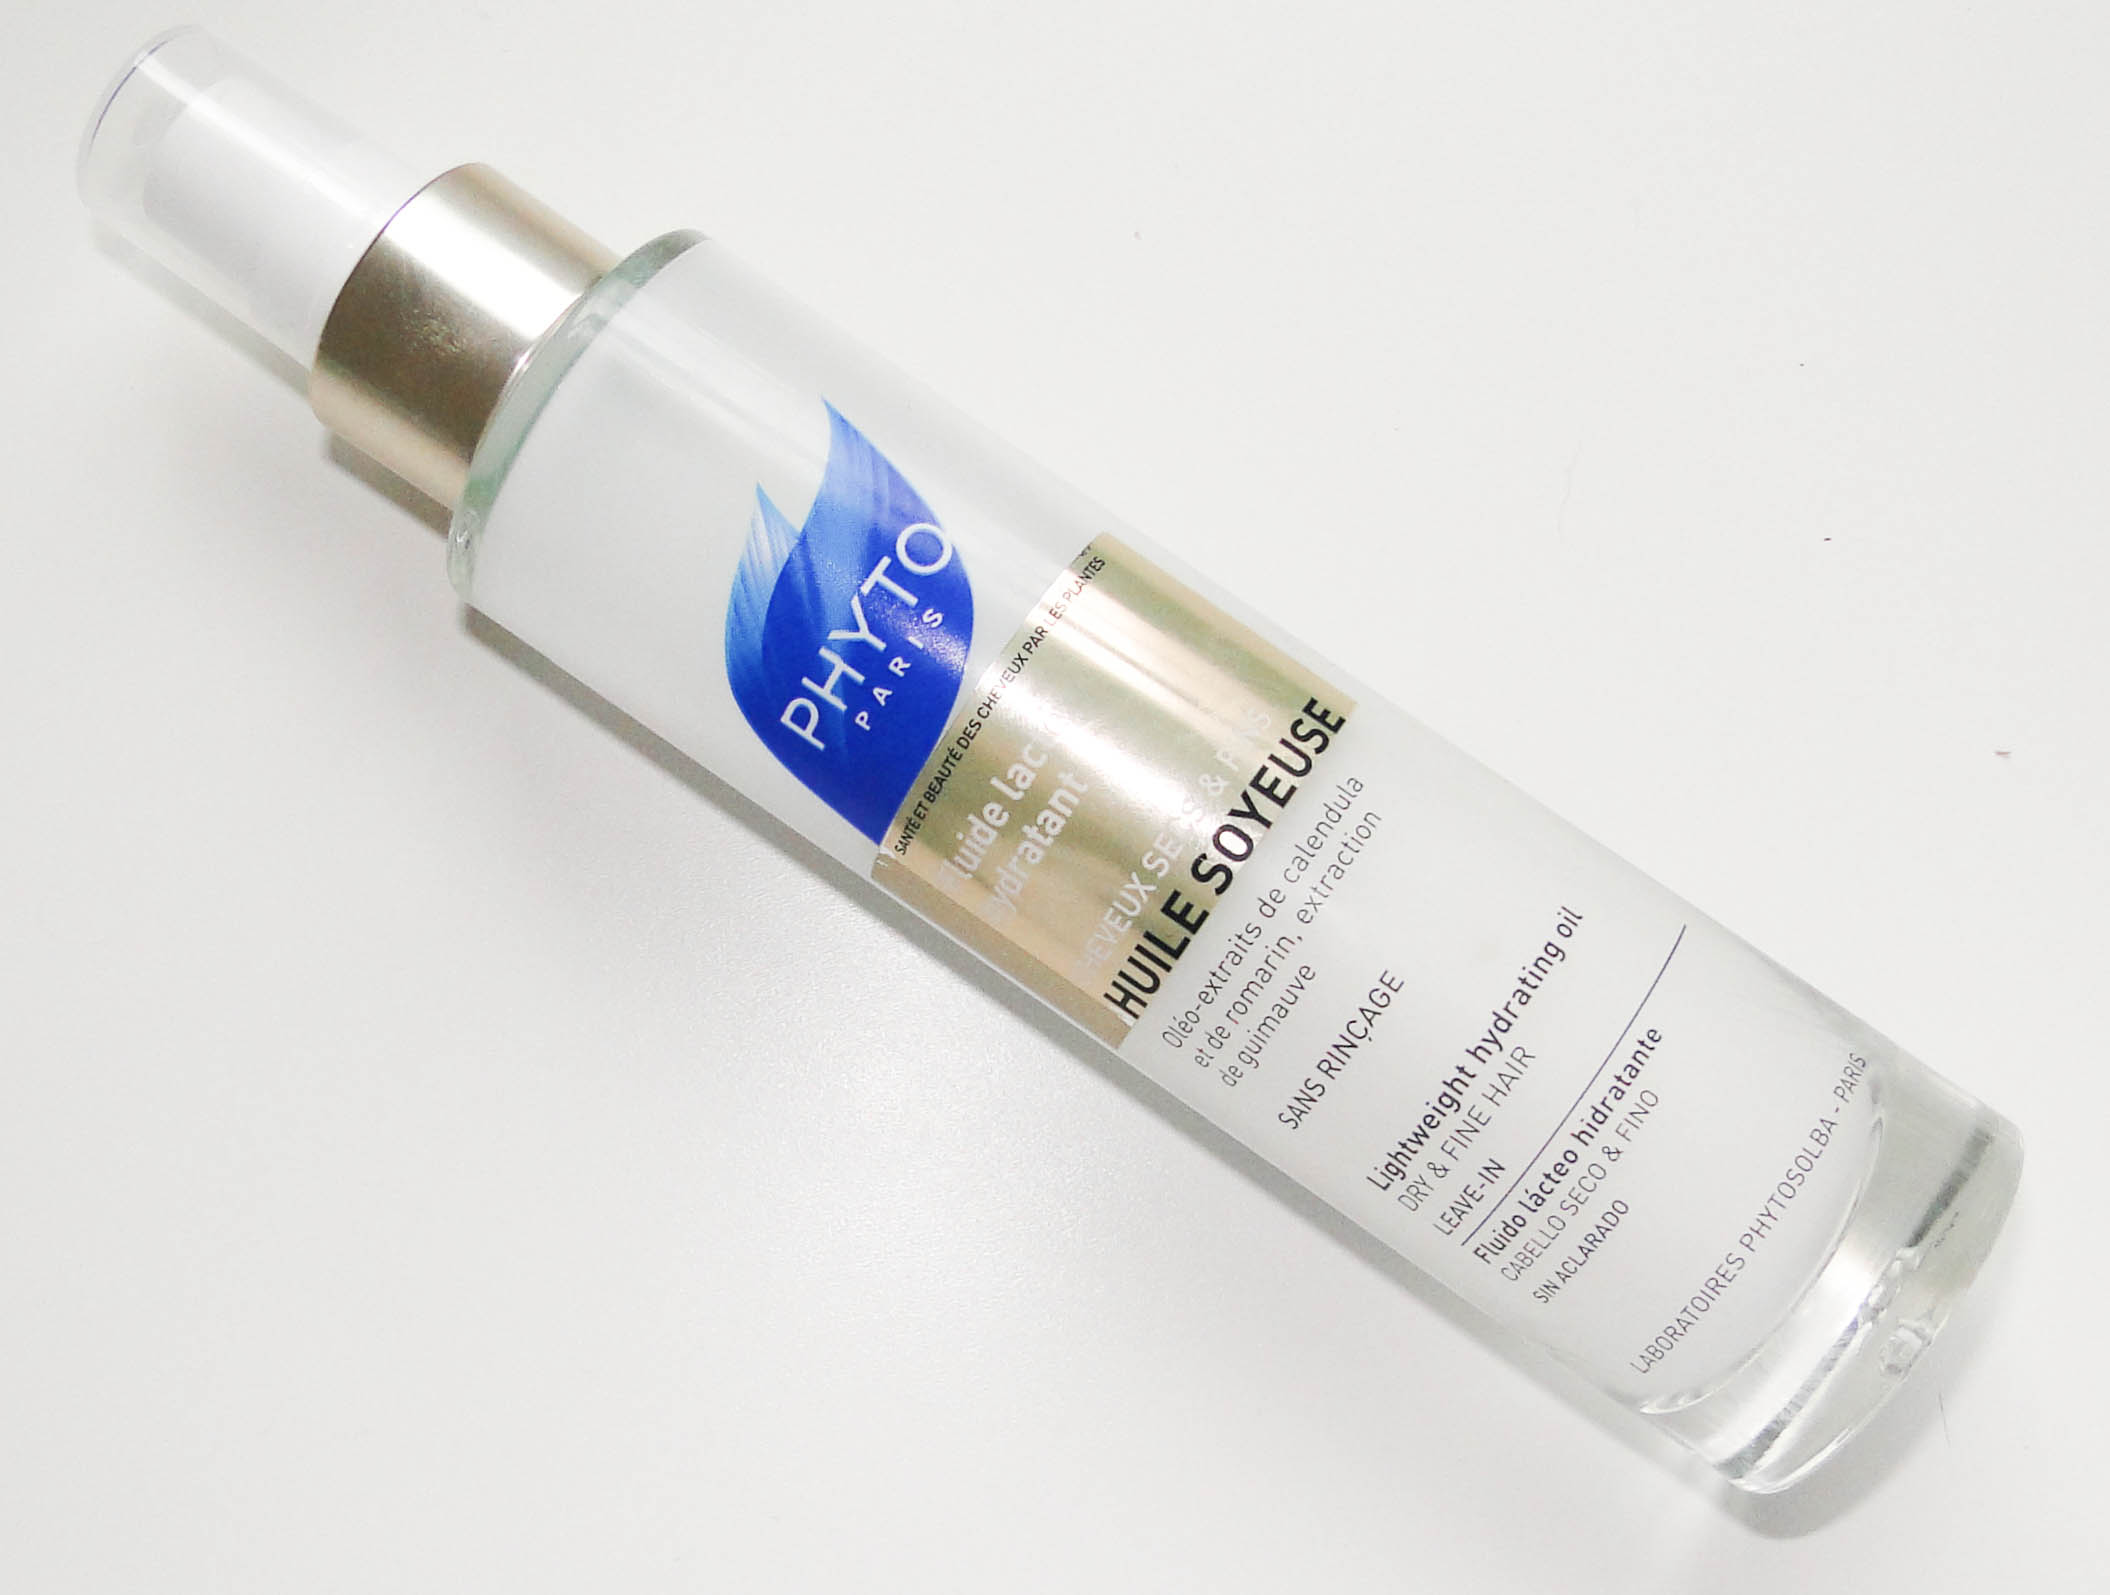 Phyto Lightweight Hydrating Oil